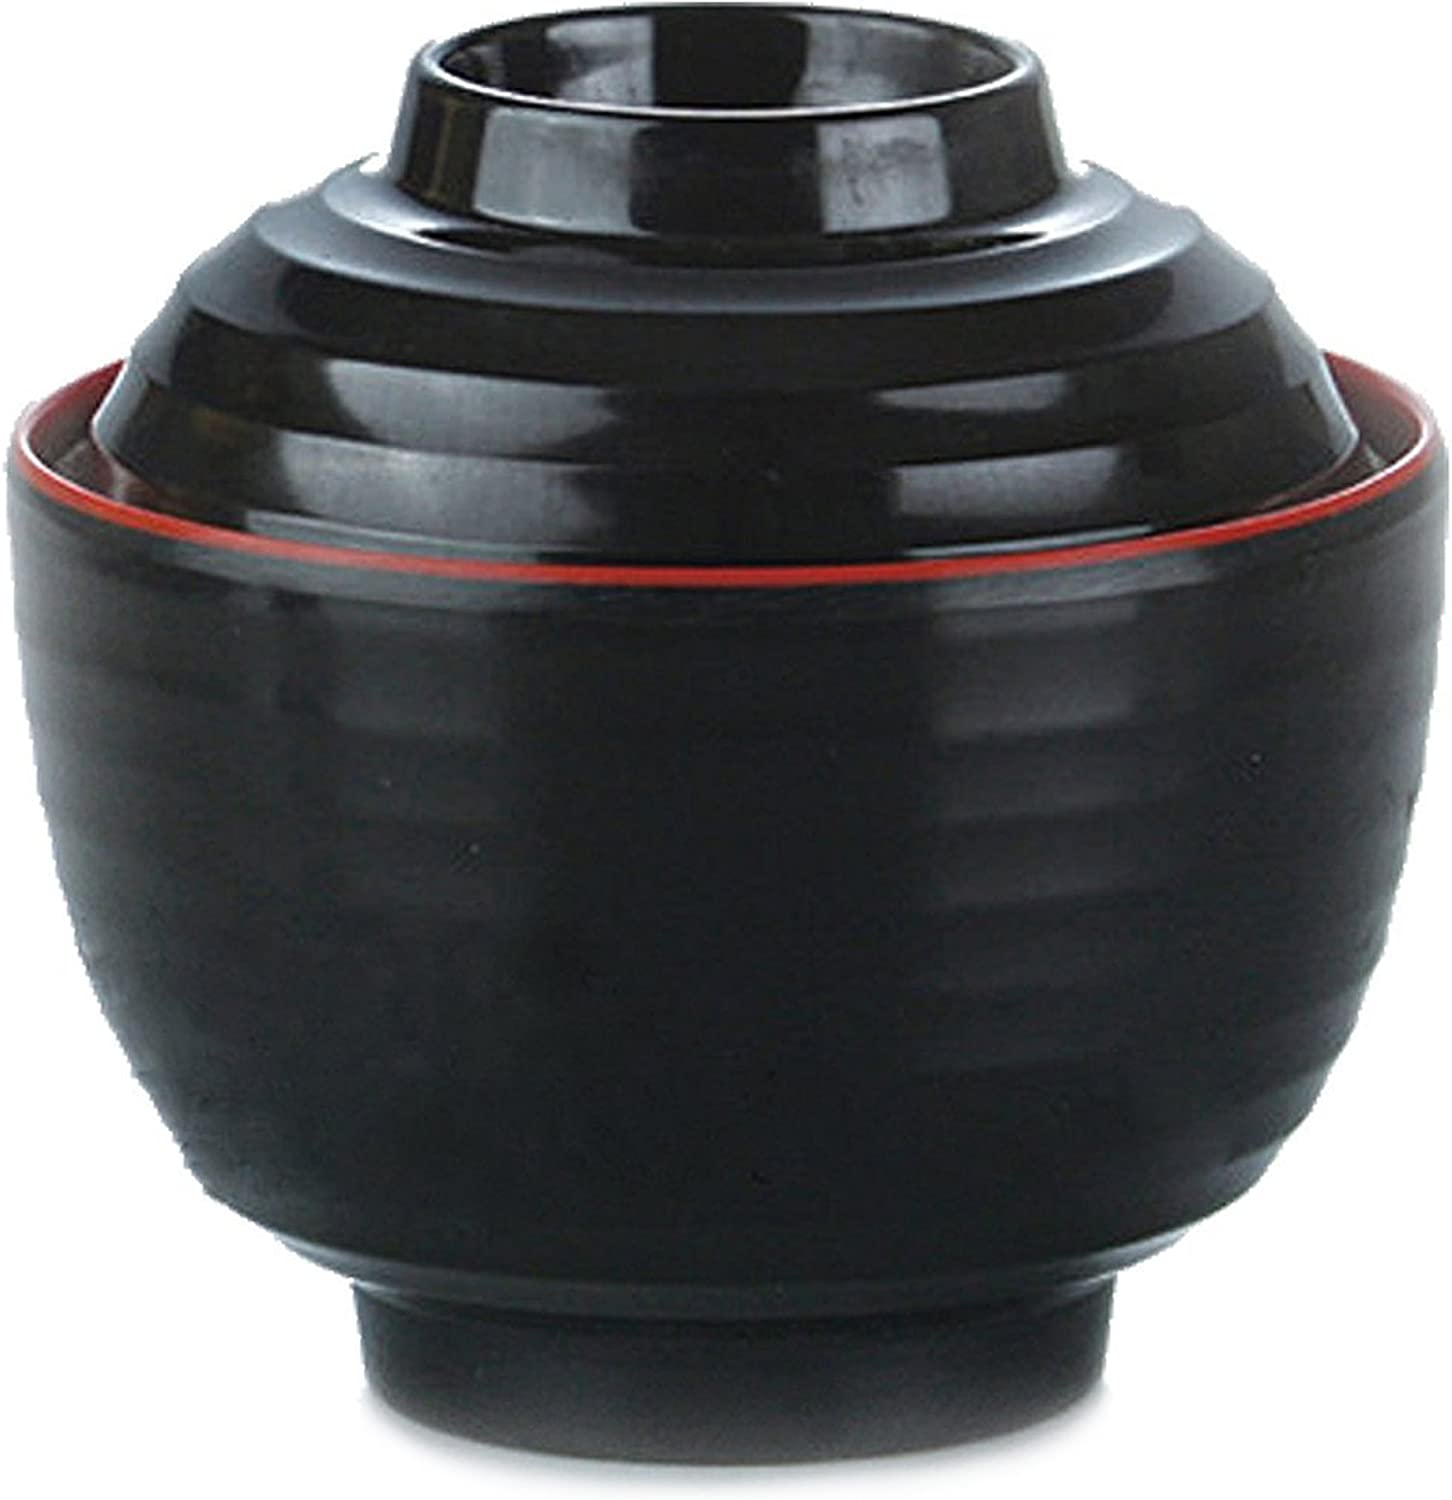 Japanese Melamine 味噌湯ボウル Miso Soup Rice Bowls With Lid (B11894) ~ We Pay Your Sales Tax